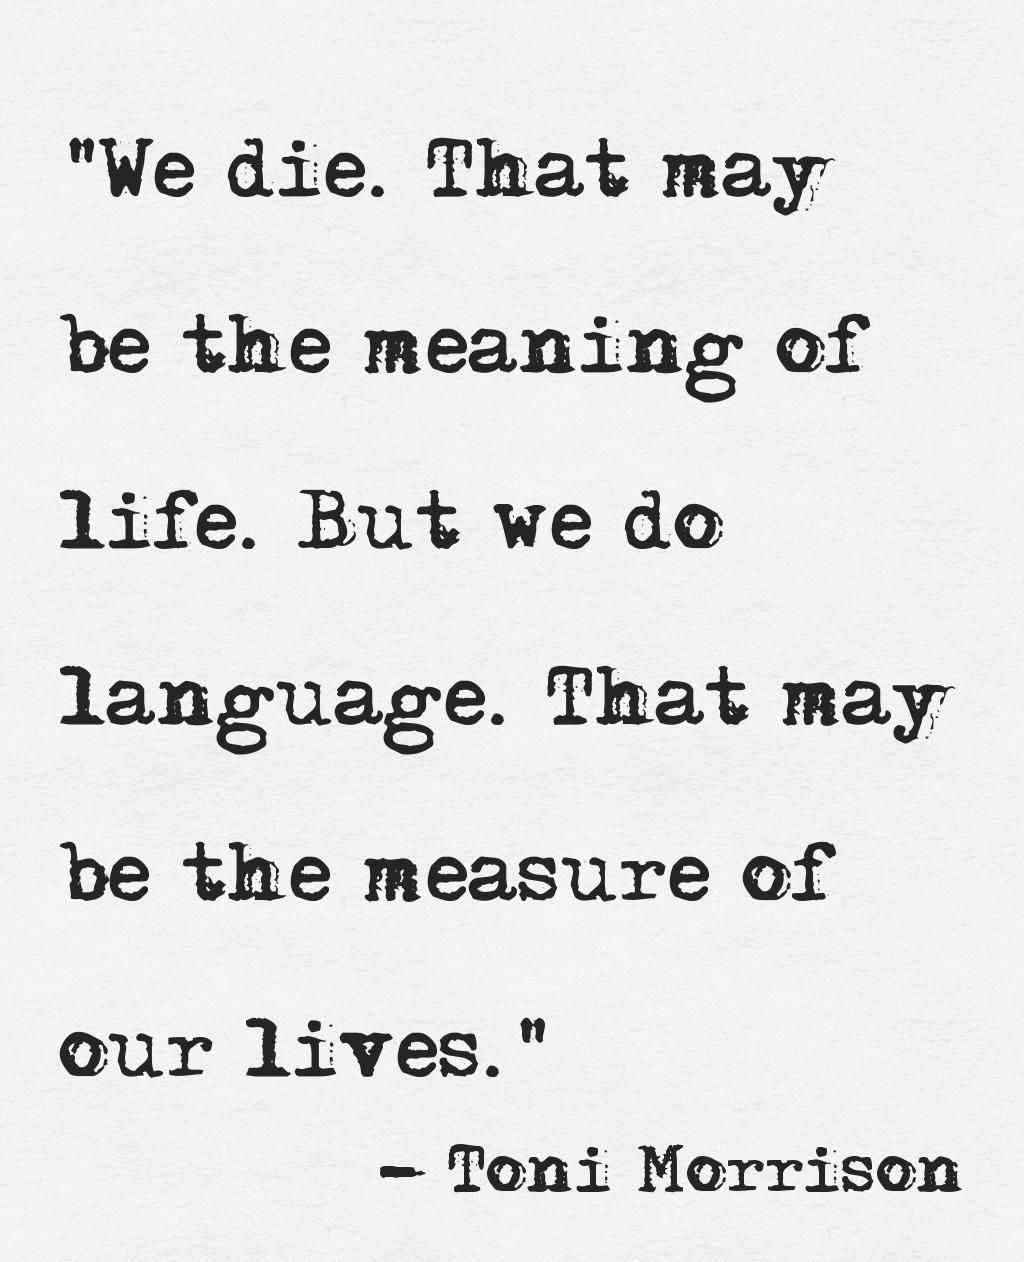 Philosophers Quotes On The Meaning Of Life We Didthat May Be The Meaning Of Lifebut We Do Languagethat